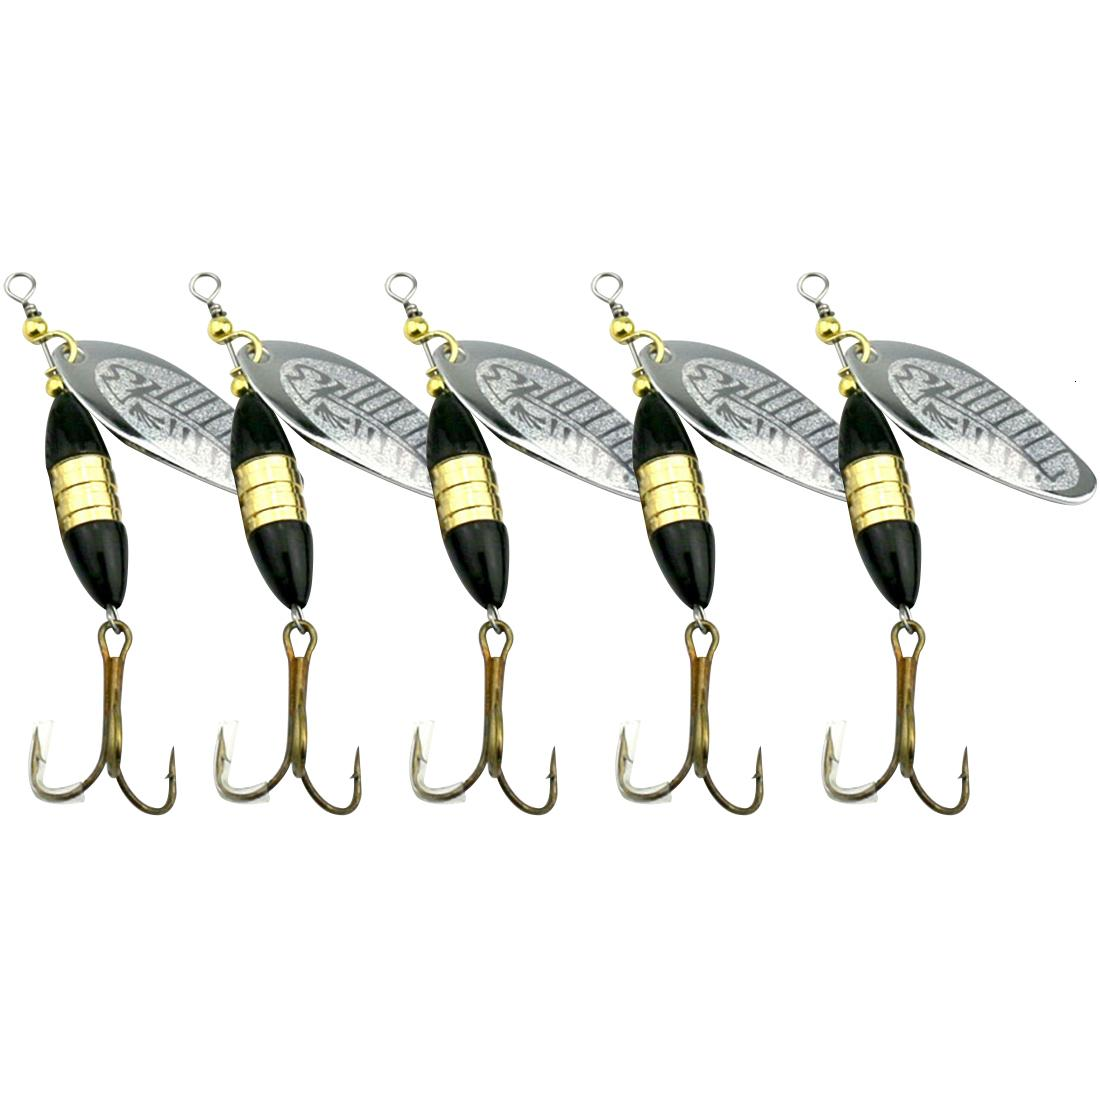 1Pcs 8.5cm 18g Trolling Metal Spinner Fishing Lure Bass Pike Carp Trout Perch Catfish Blade Spoon Sequins Hard Bait Pesca Tackle T191016